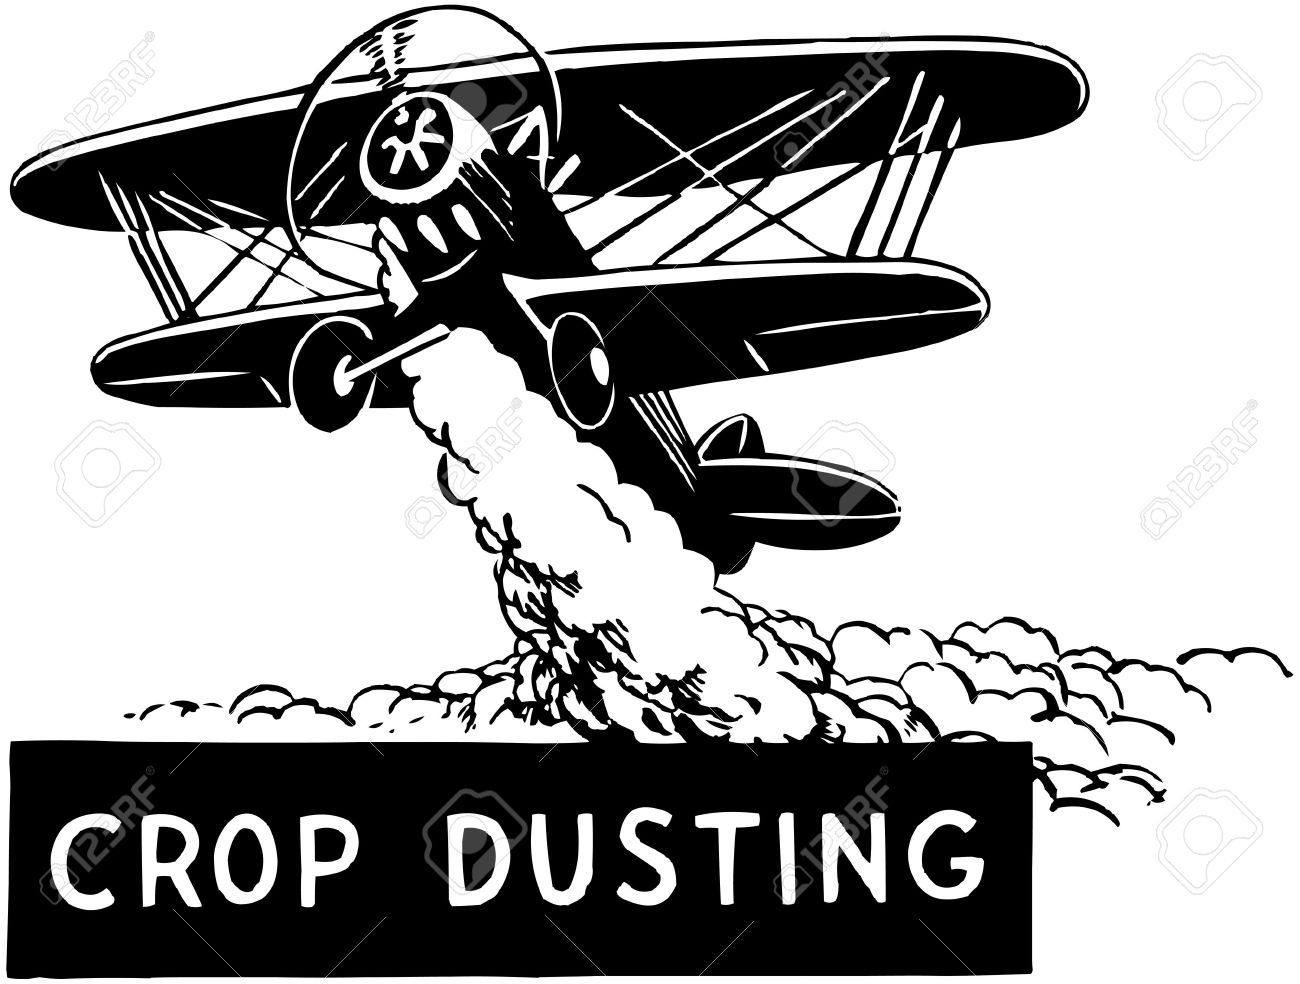 1000+ images about Crop Dusting Clip Art on Pinterest.